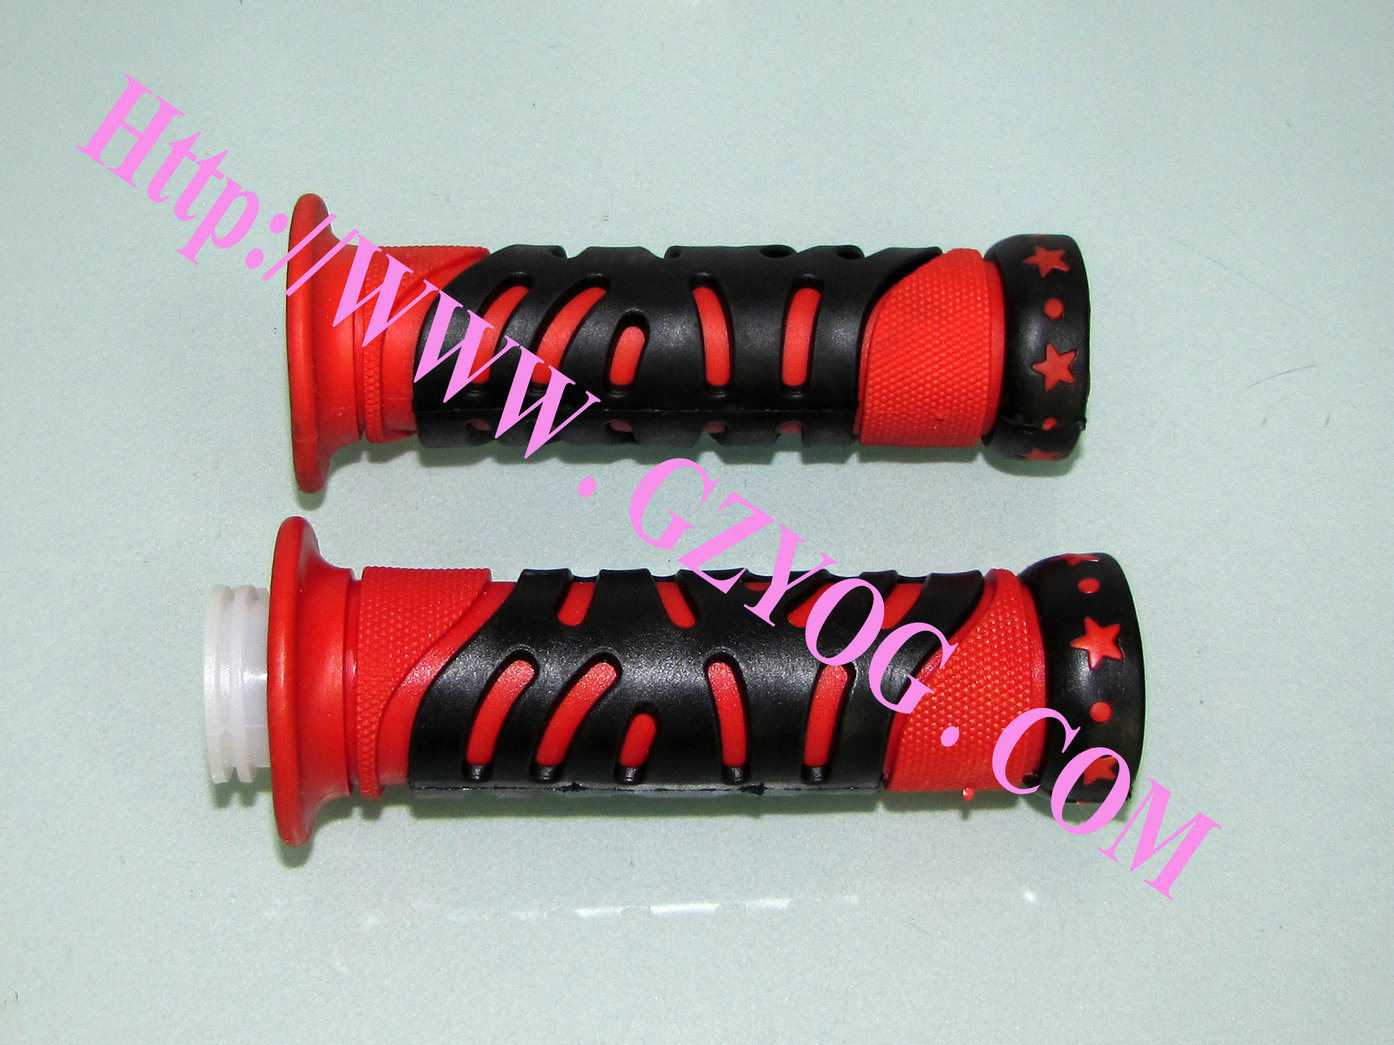 Yog Modified Motorcycle Spare Parts Handle Grips Red Blue Silver Chrome Multi Colors Decoration Parts